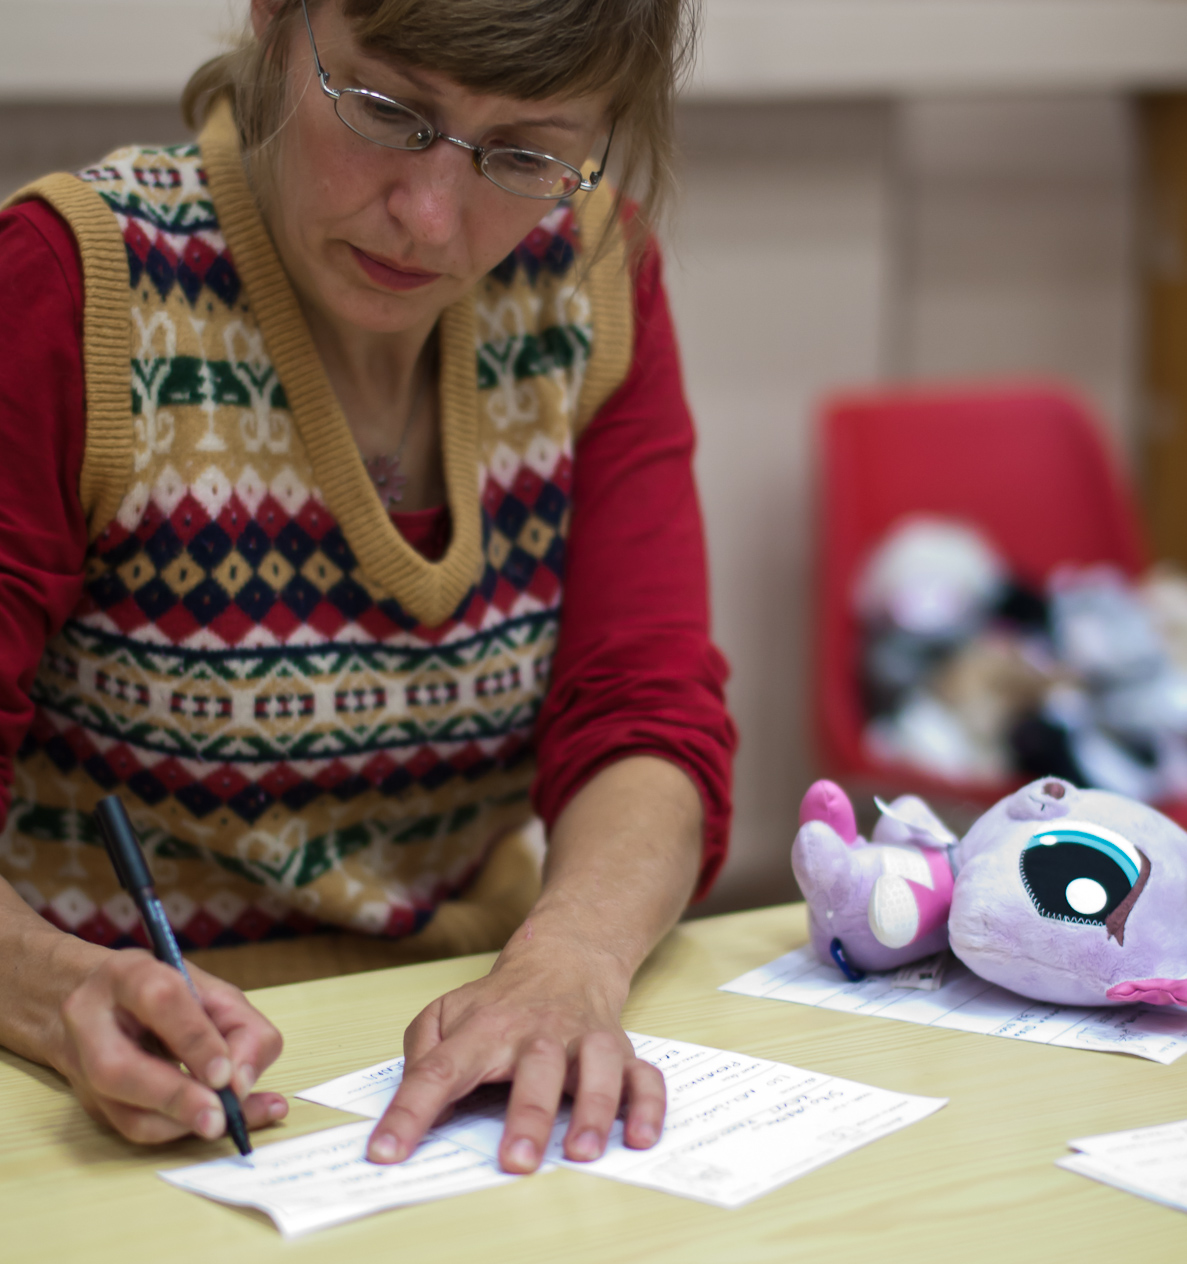 the toy cat contest, photo 179089, 2011-09-10